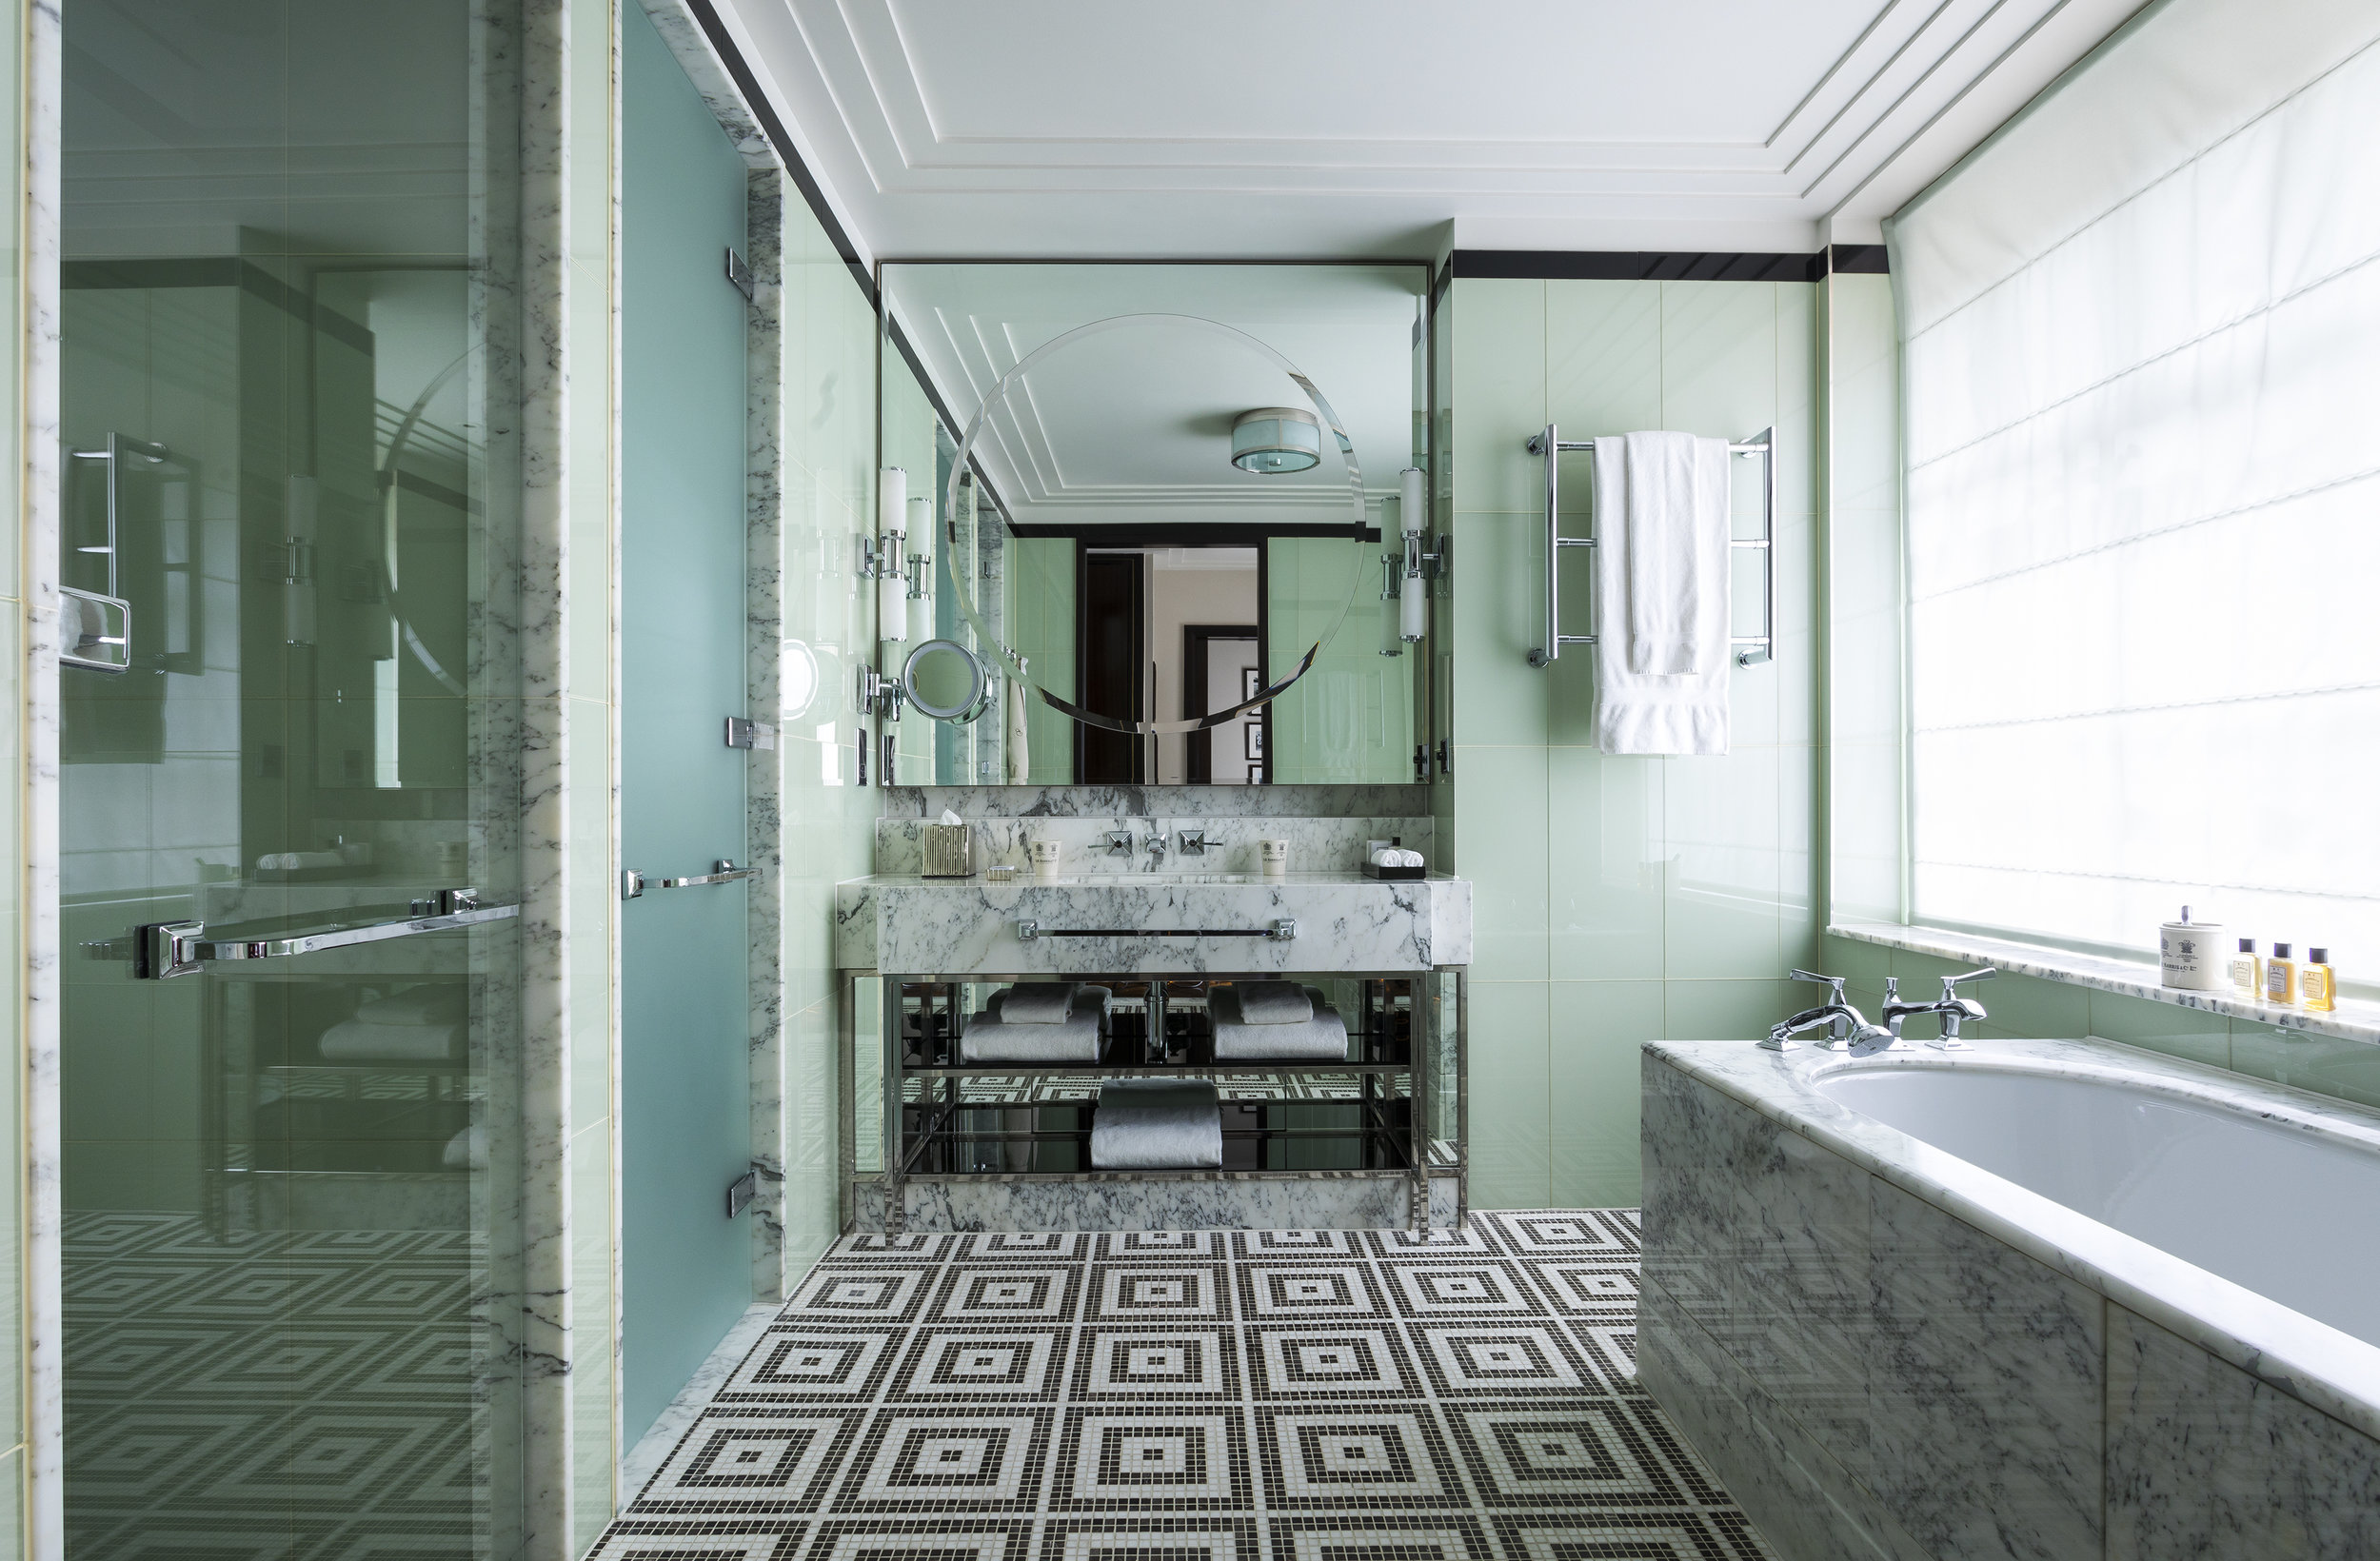 06 Beaumont_Bathroom_Bath_GramRoad_MR.jpg